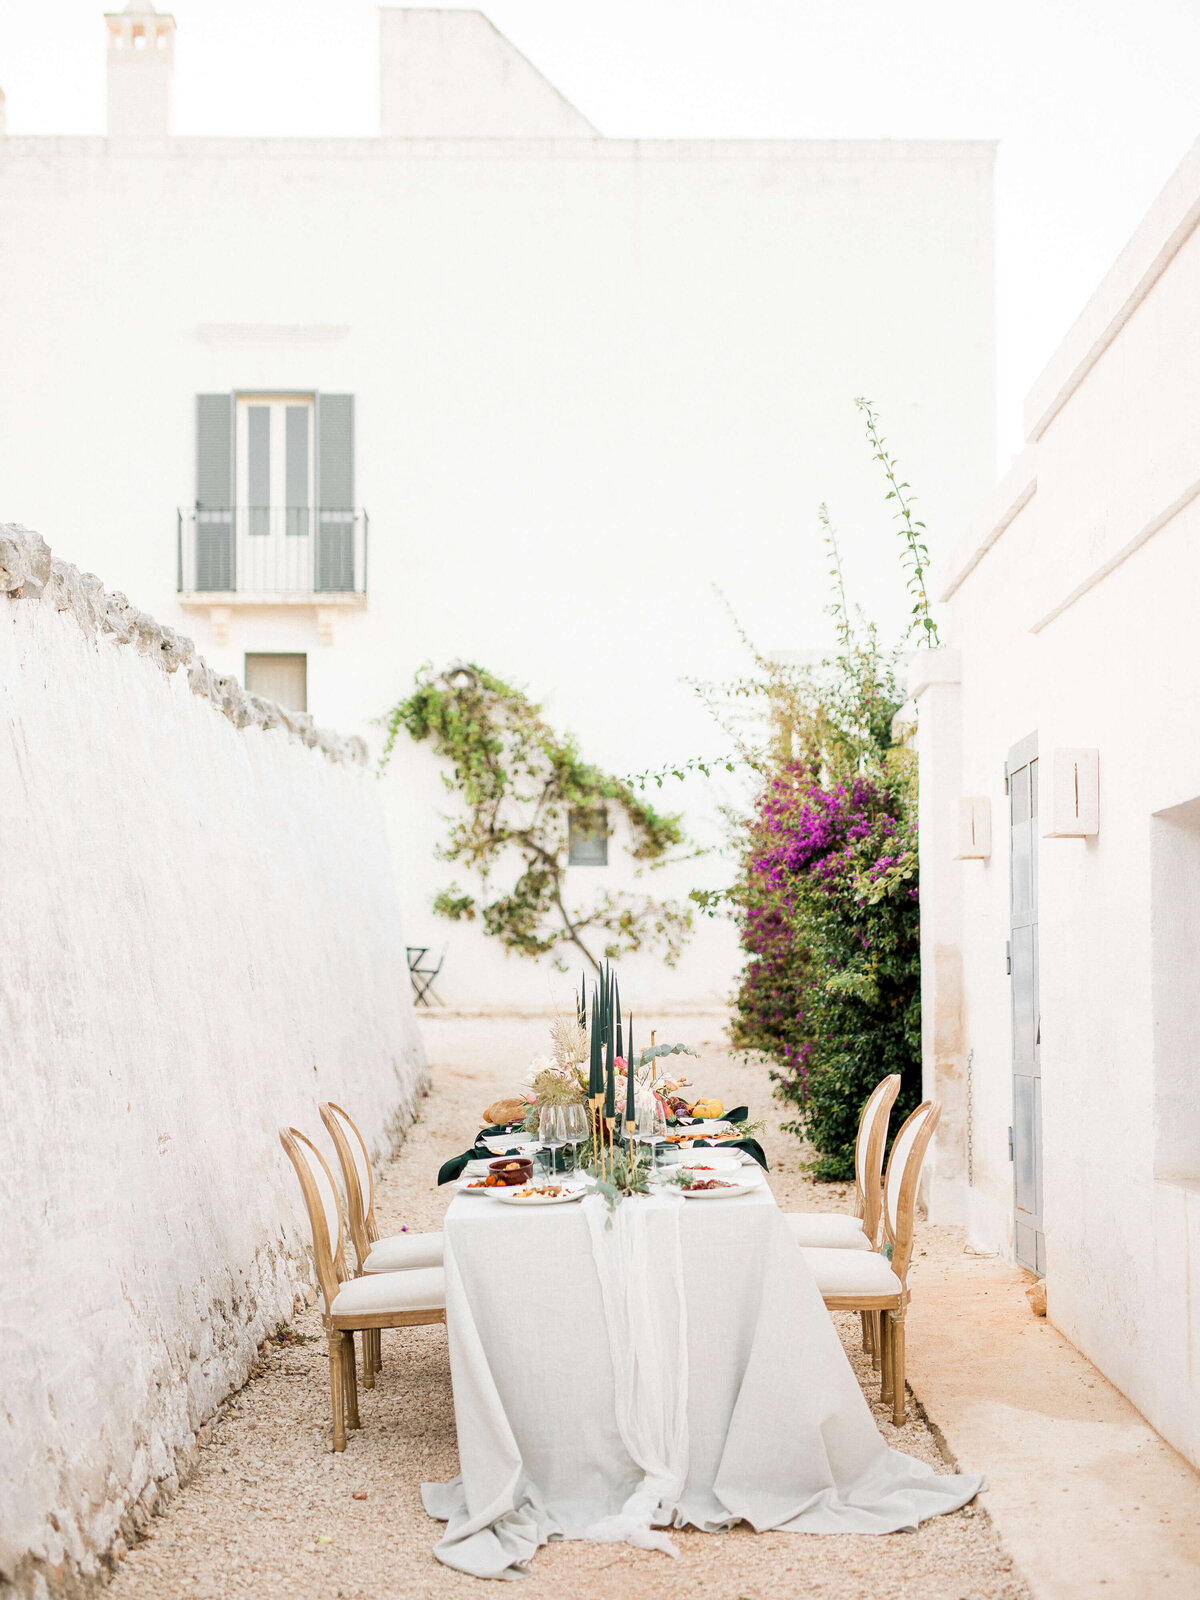 Styled Shoot - Honeymoon - Masseria - Puglia - Italy 0230